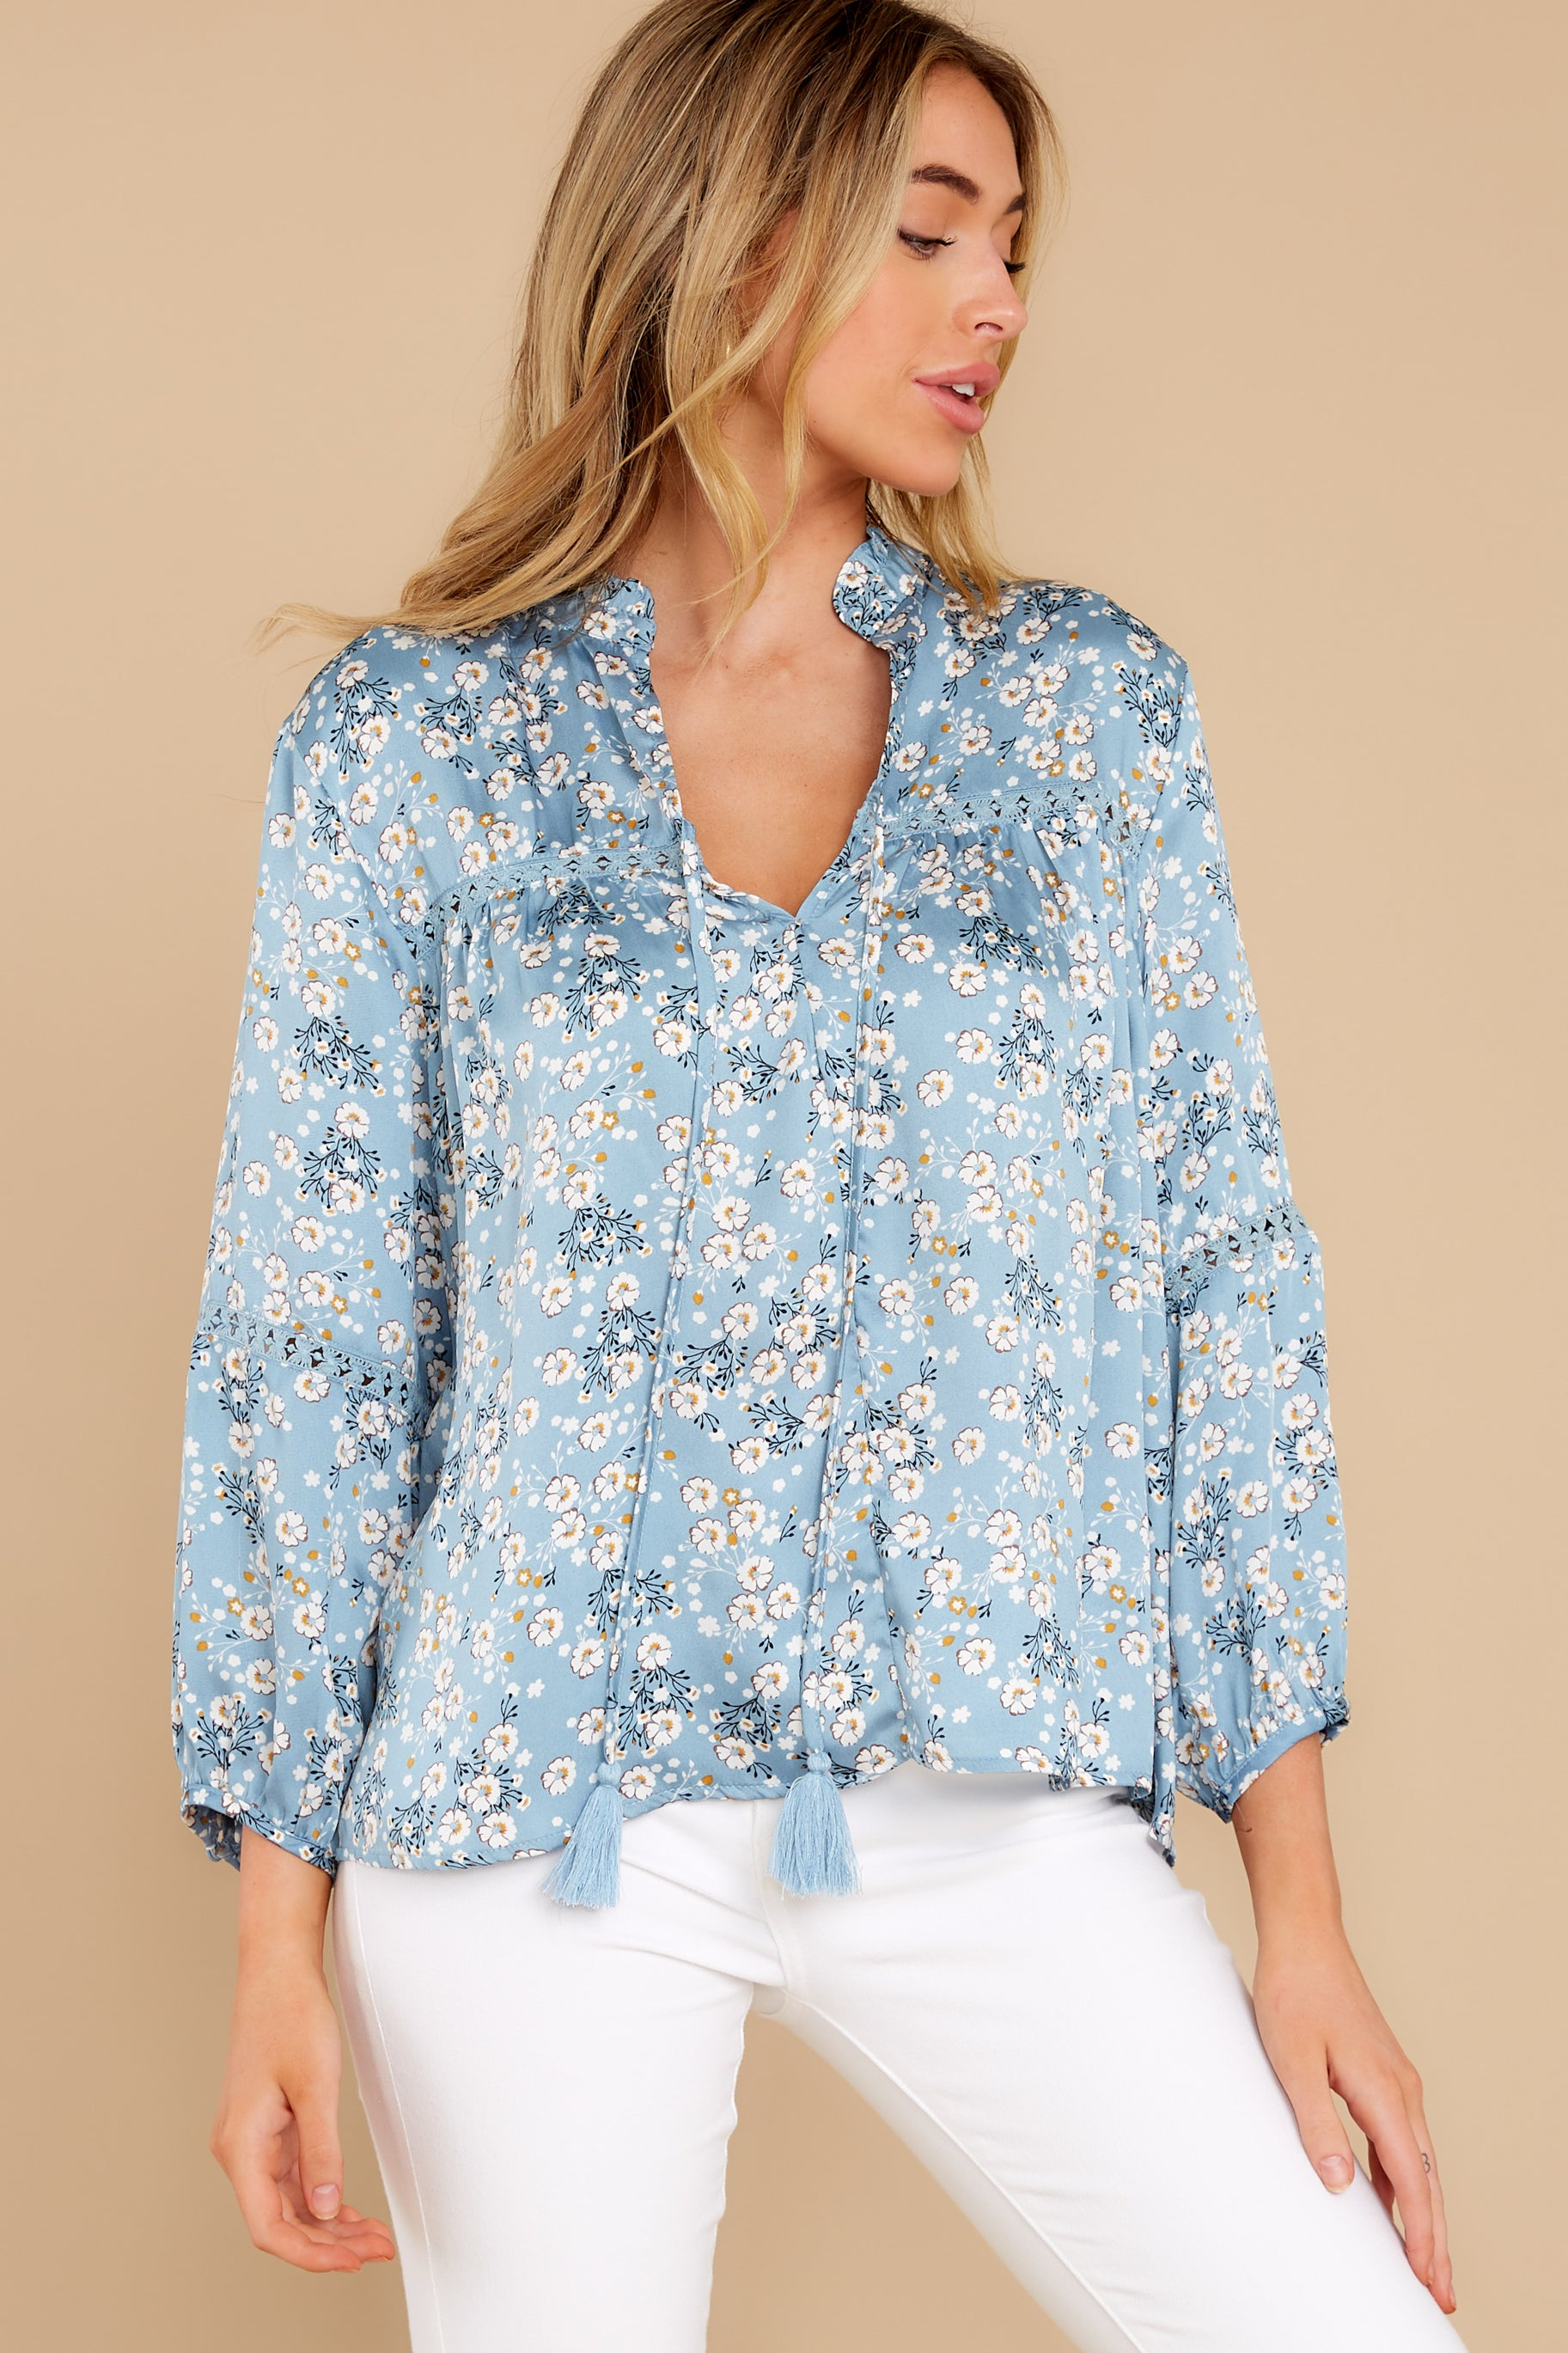 6 Little Cutie Light Blue Floral Print Top at reddress.com